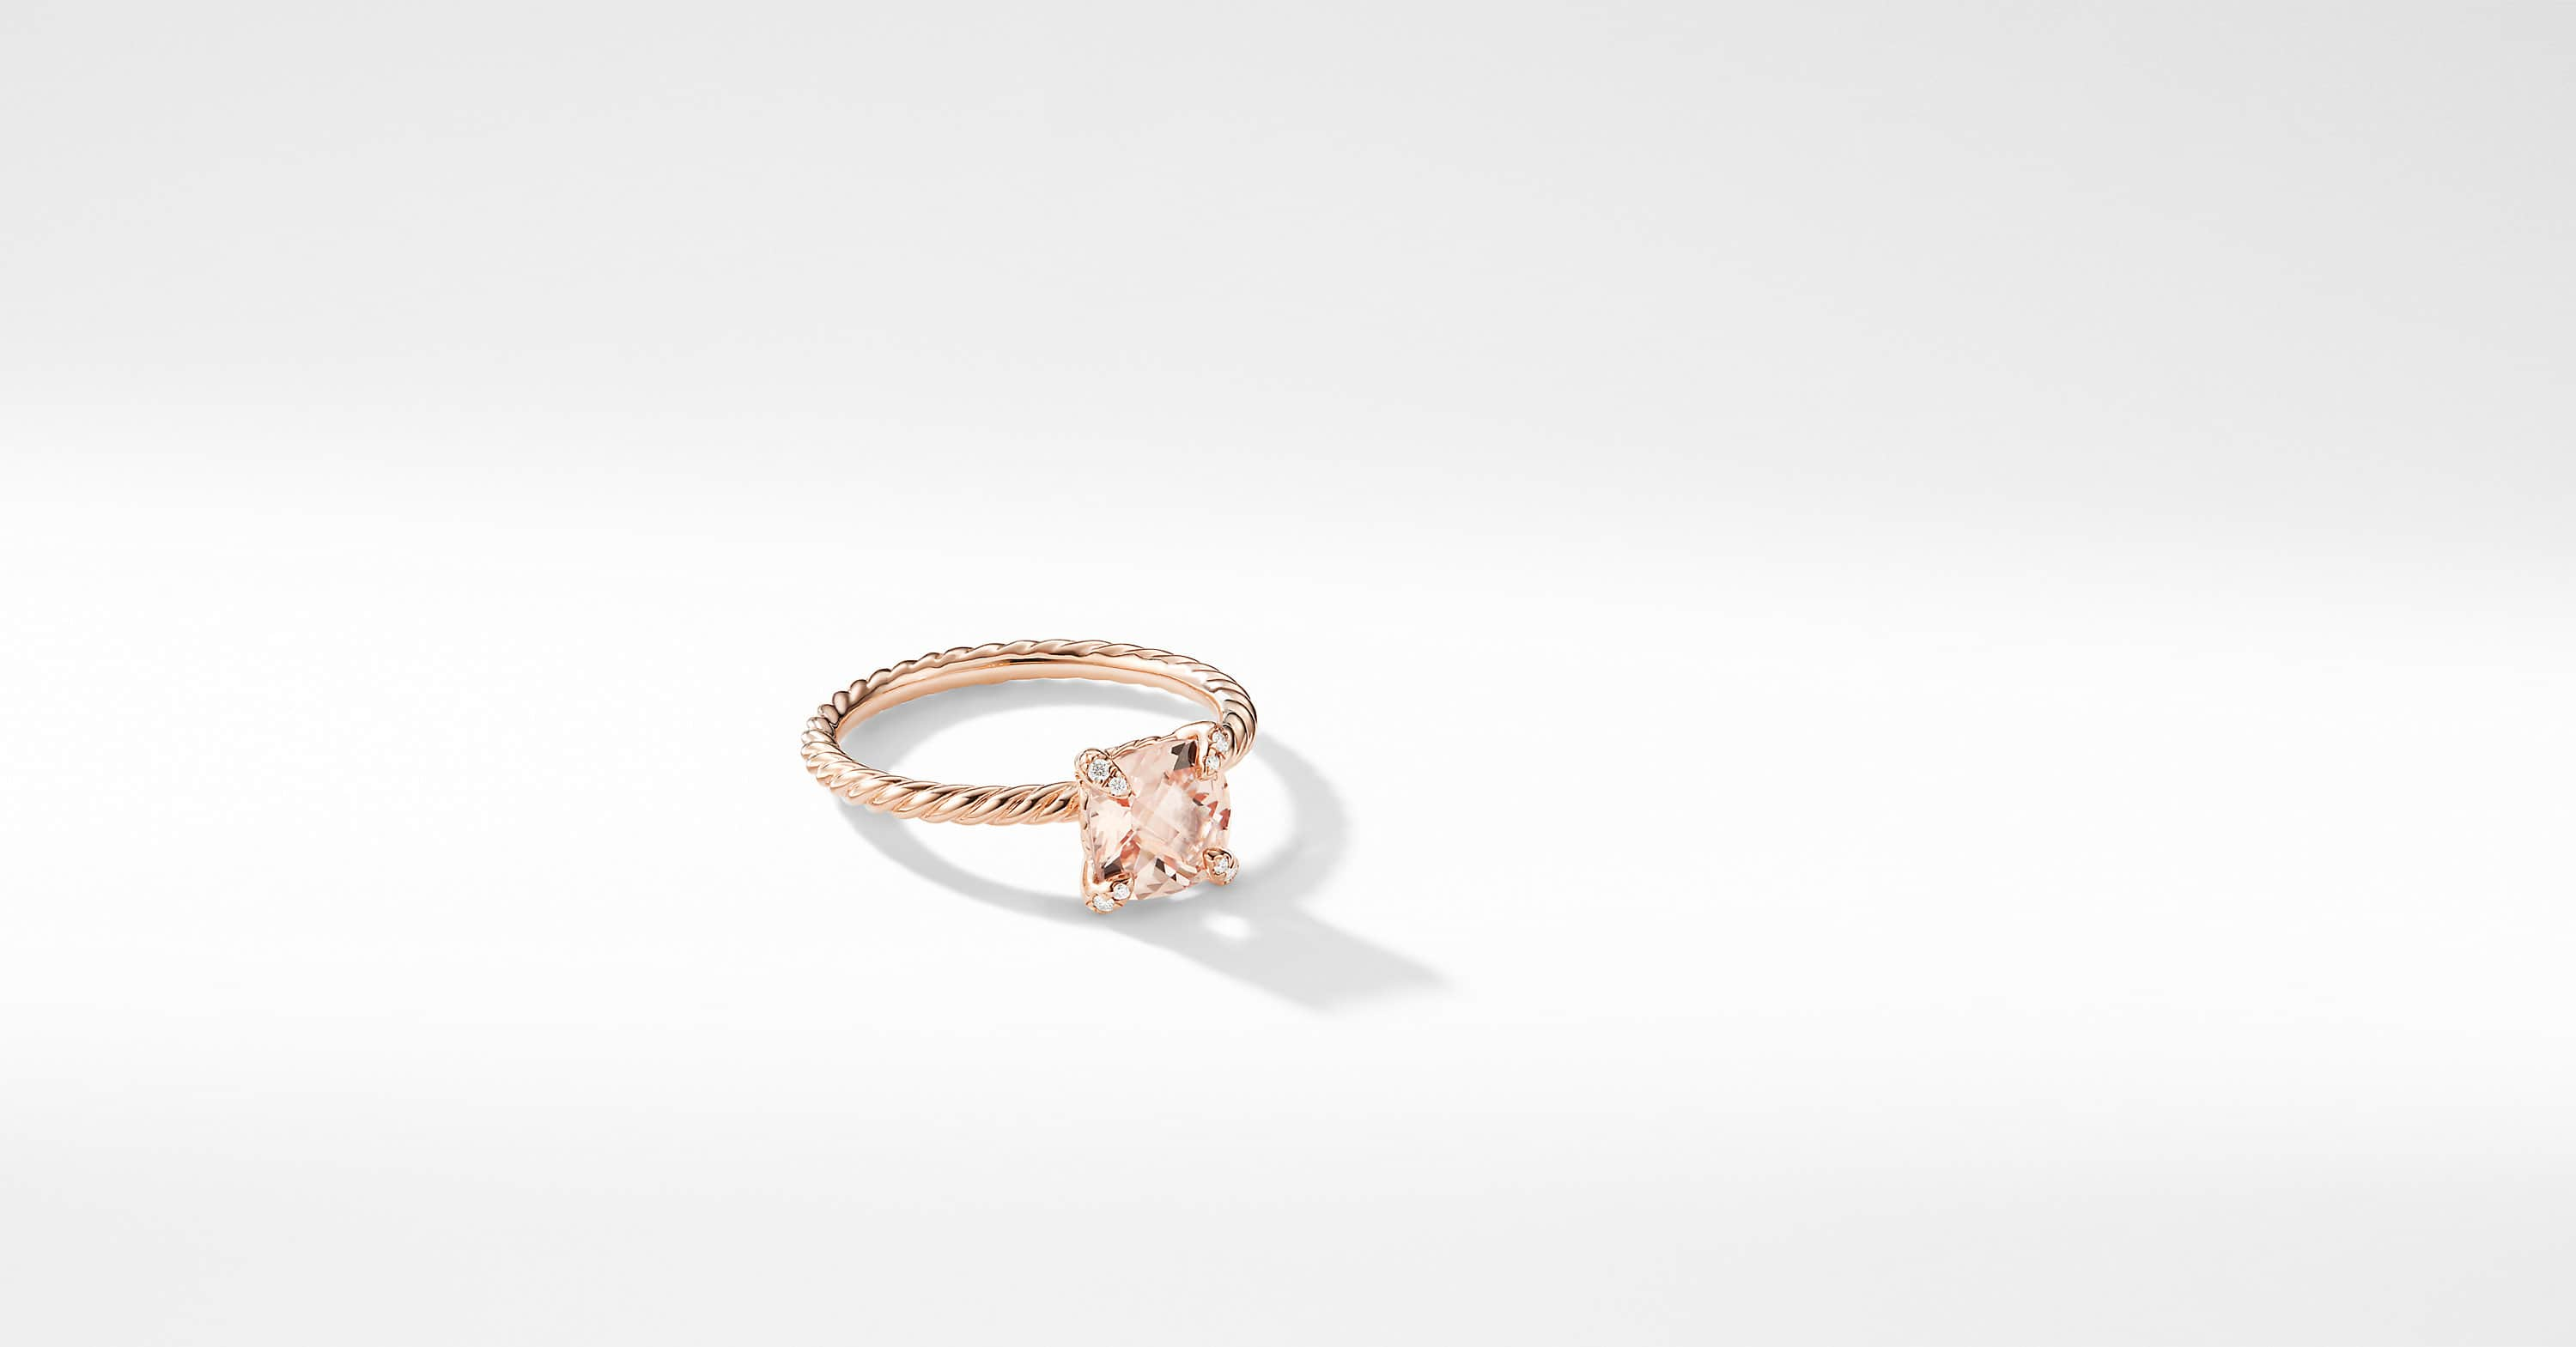 Chatelaine Ring with Diamonds in 18K Rose Gold, 7mm